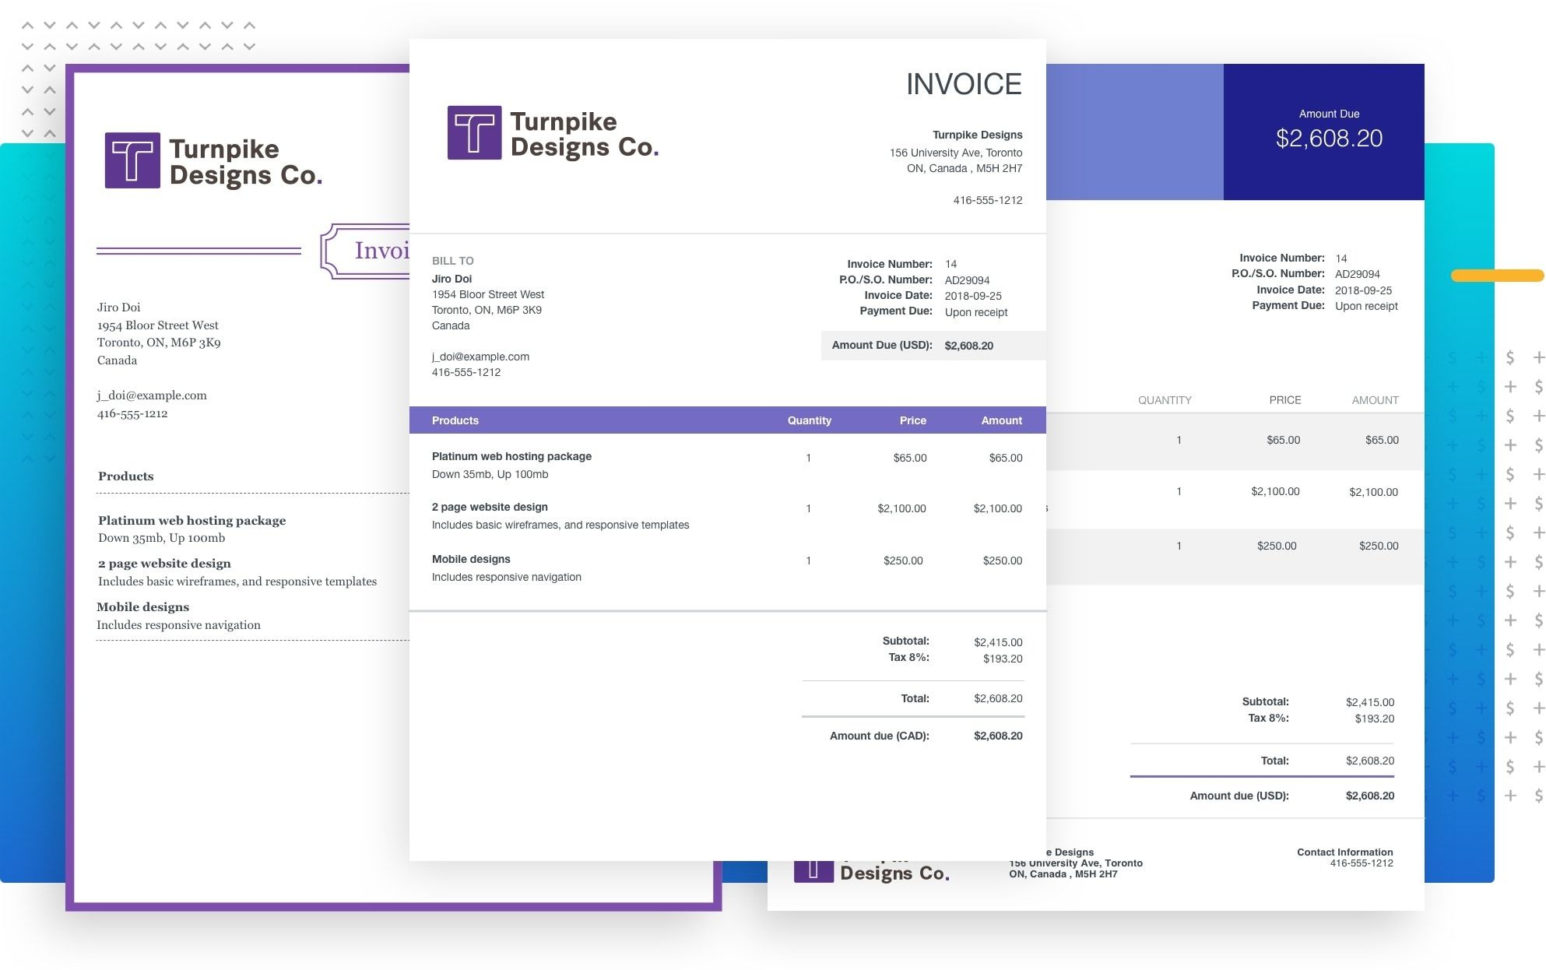 Invoice Spreadsheet Template With Regard To Send Professional Invoices For Free—Invoicewave